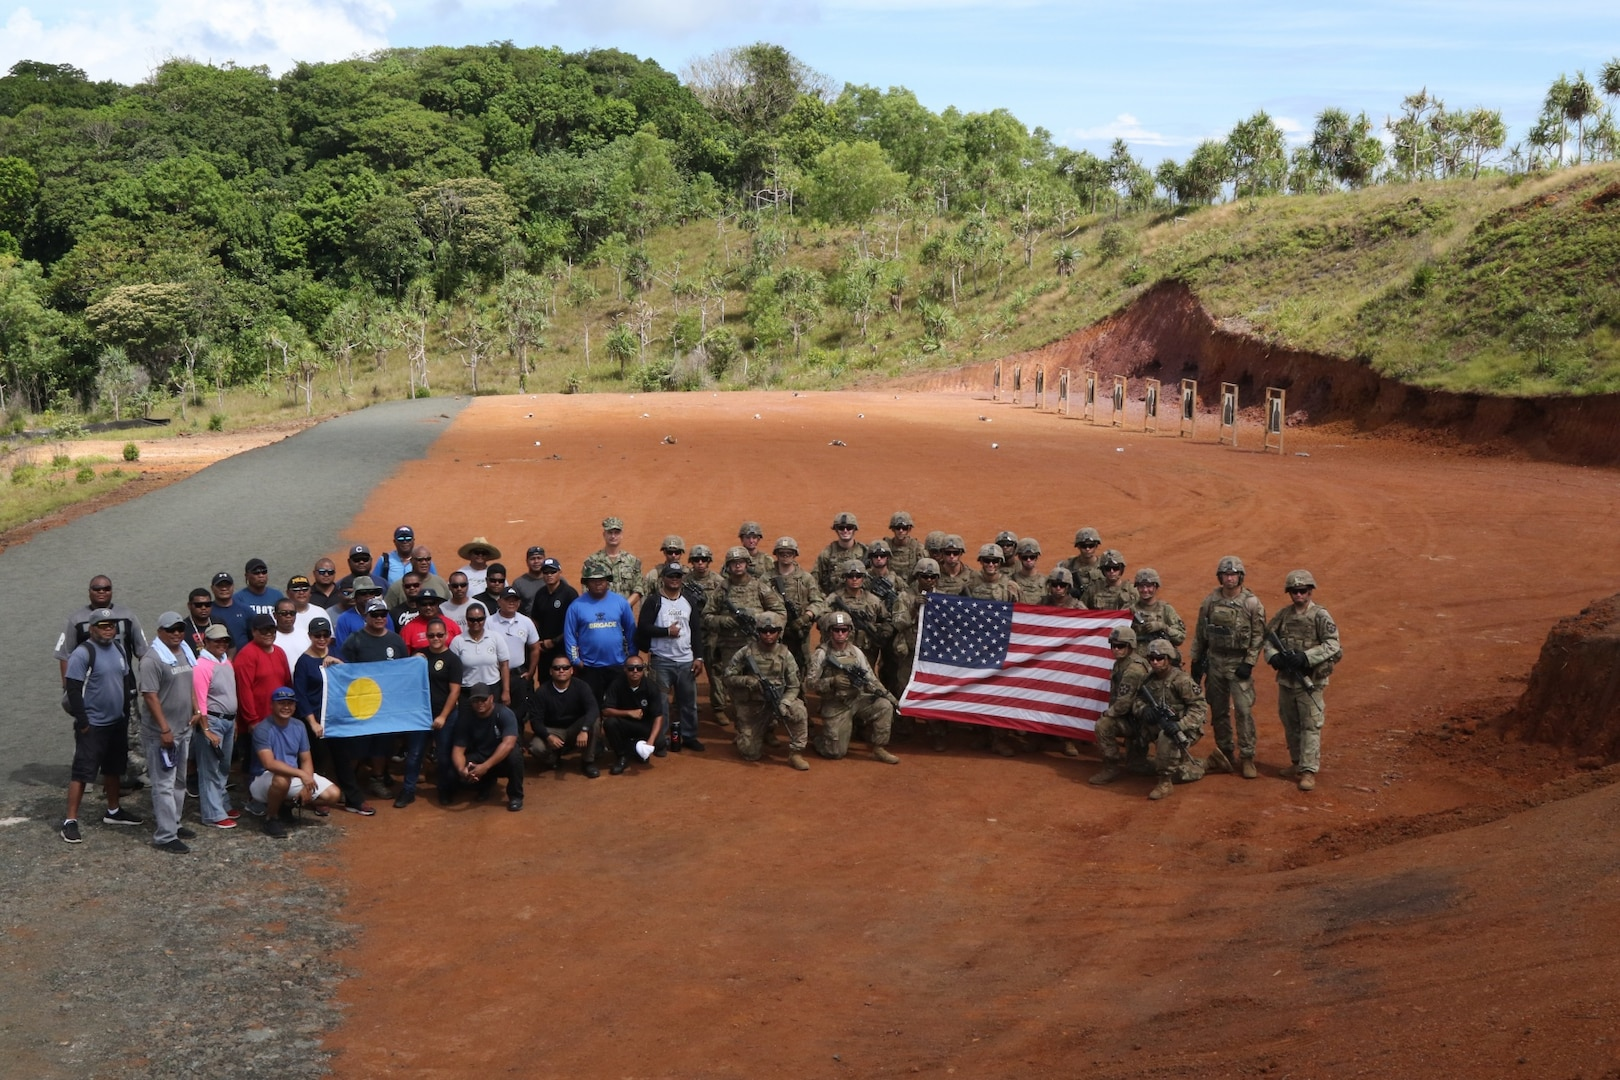 5-20th Infantry Regiment Builds Partnership and Trains in Palau